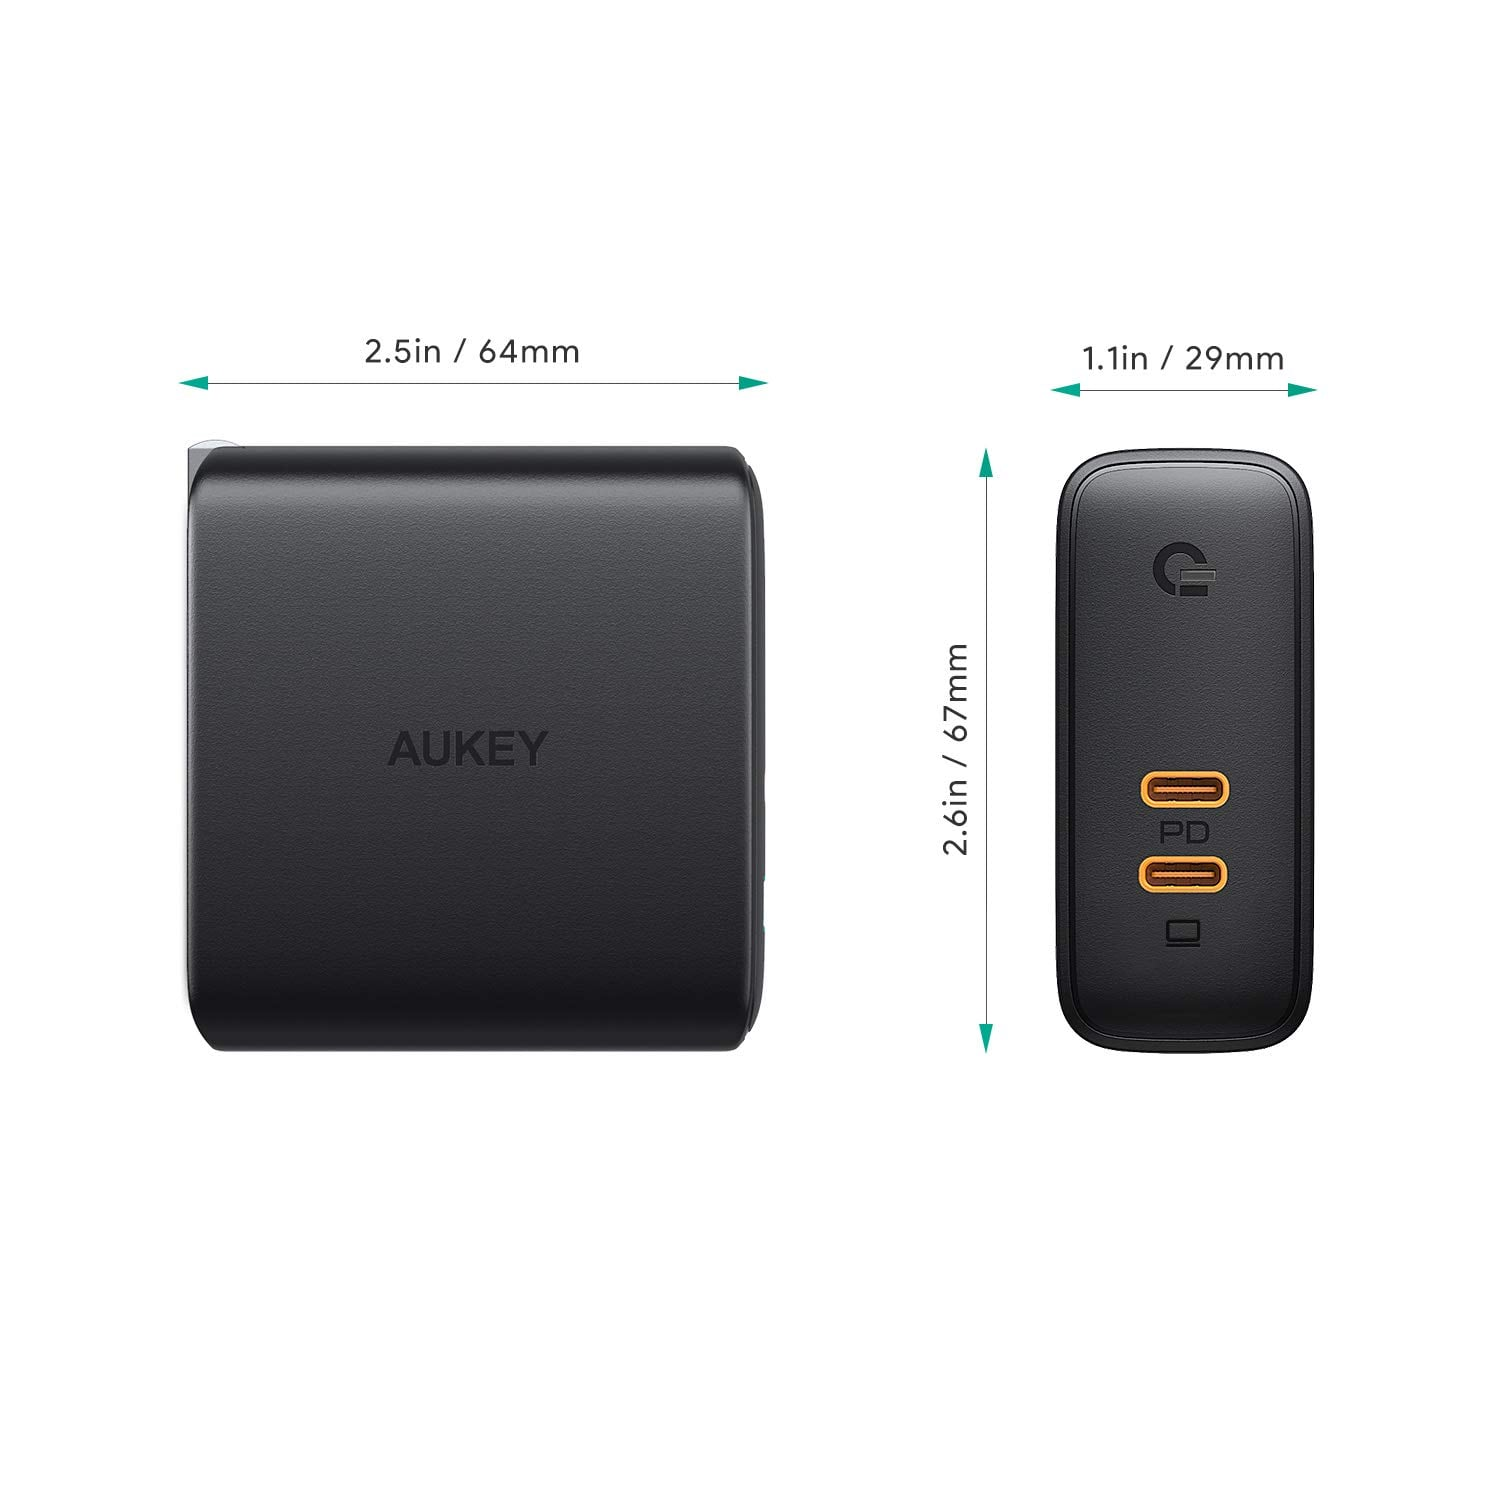 AUKEY 60W Dual Port USB-C Power Delivery 3.0 [GaN] Fast Charger $24.99